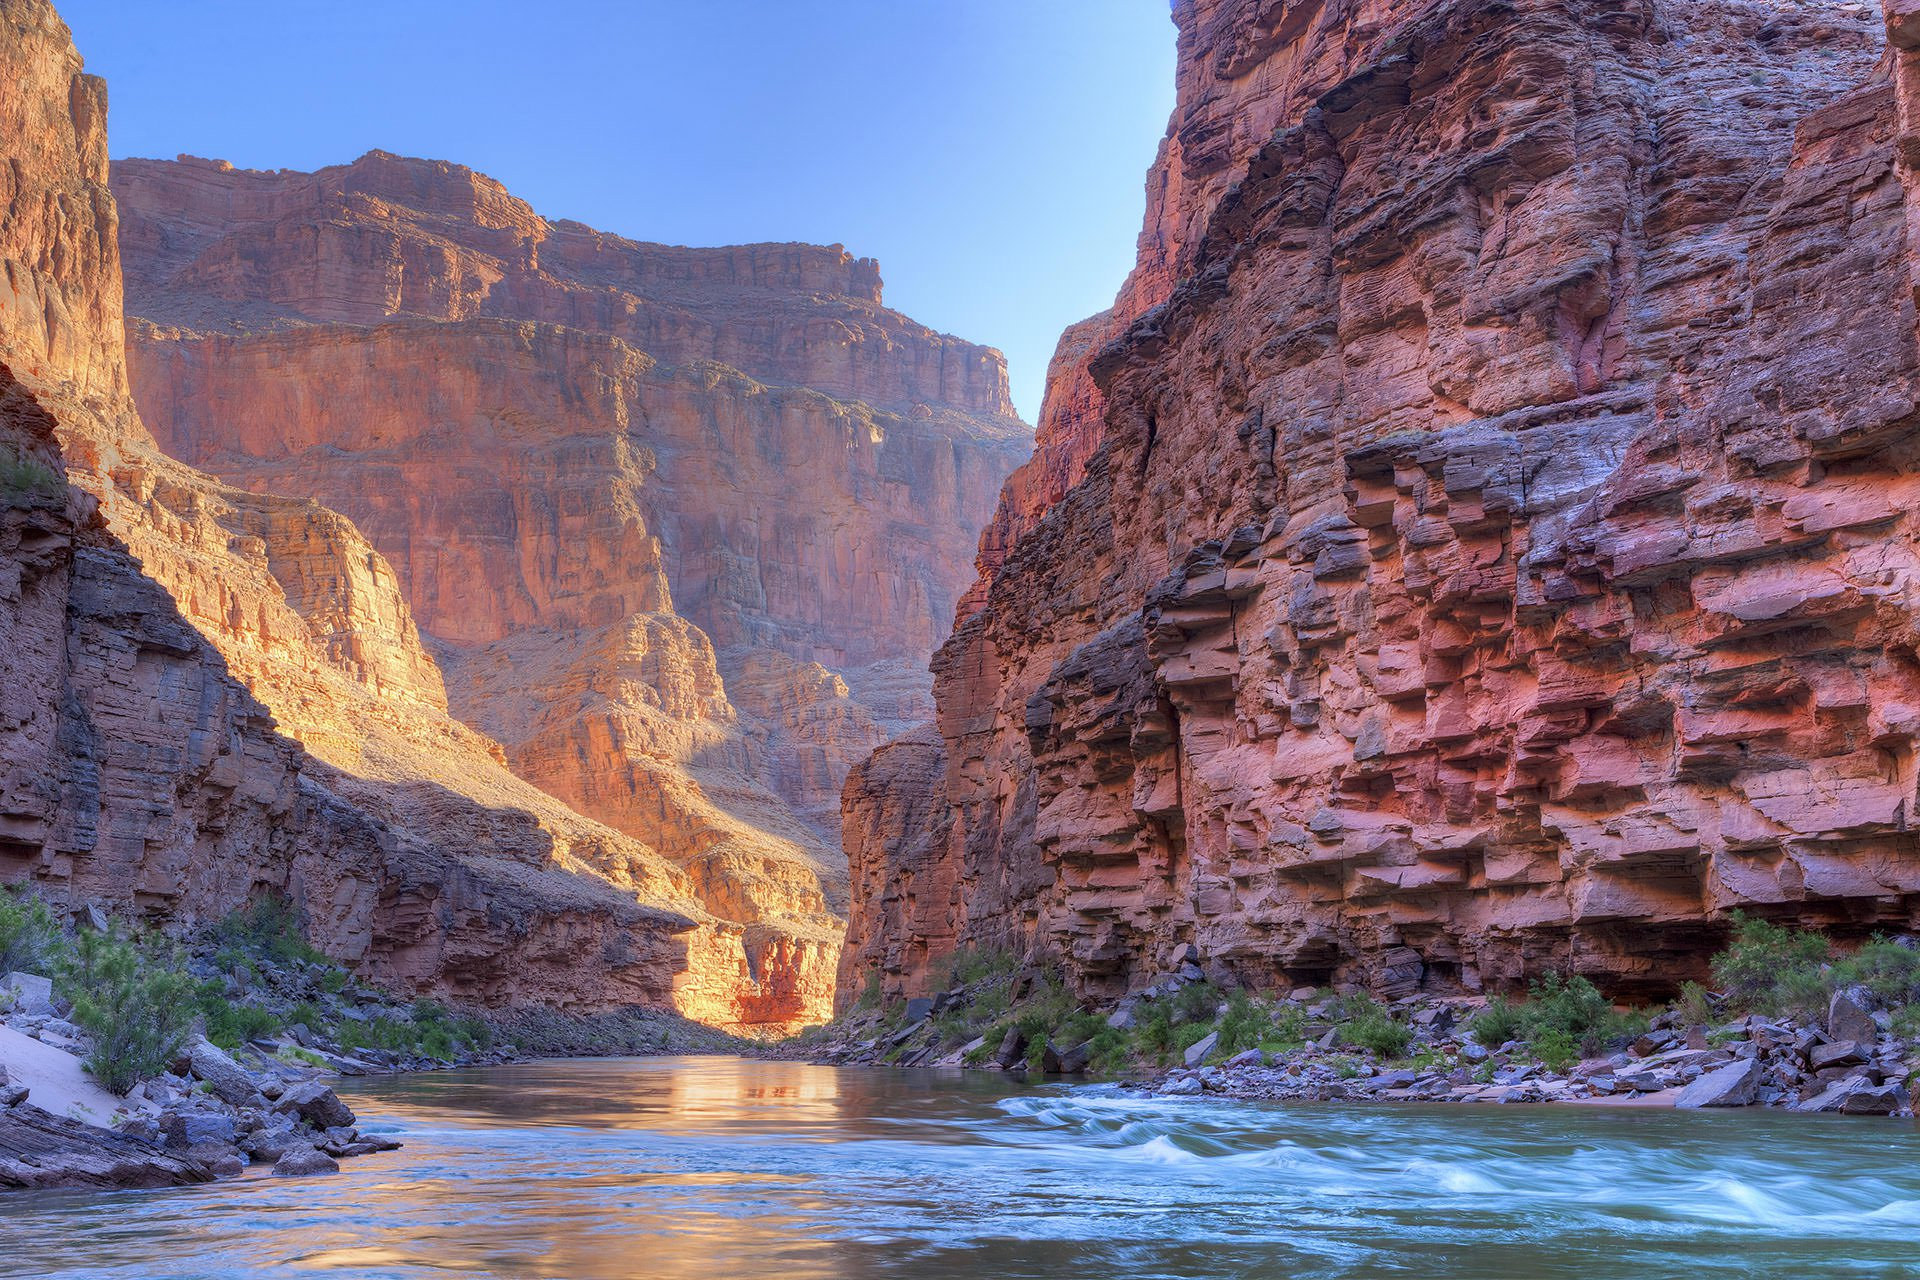 HQ Grand Canyon Wallpapers | File 661.32Kb